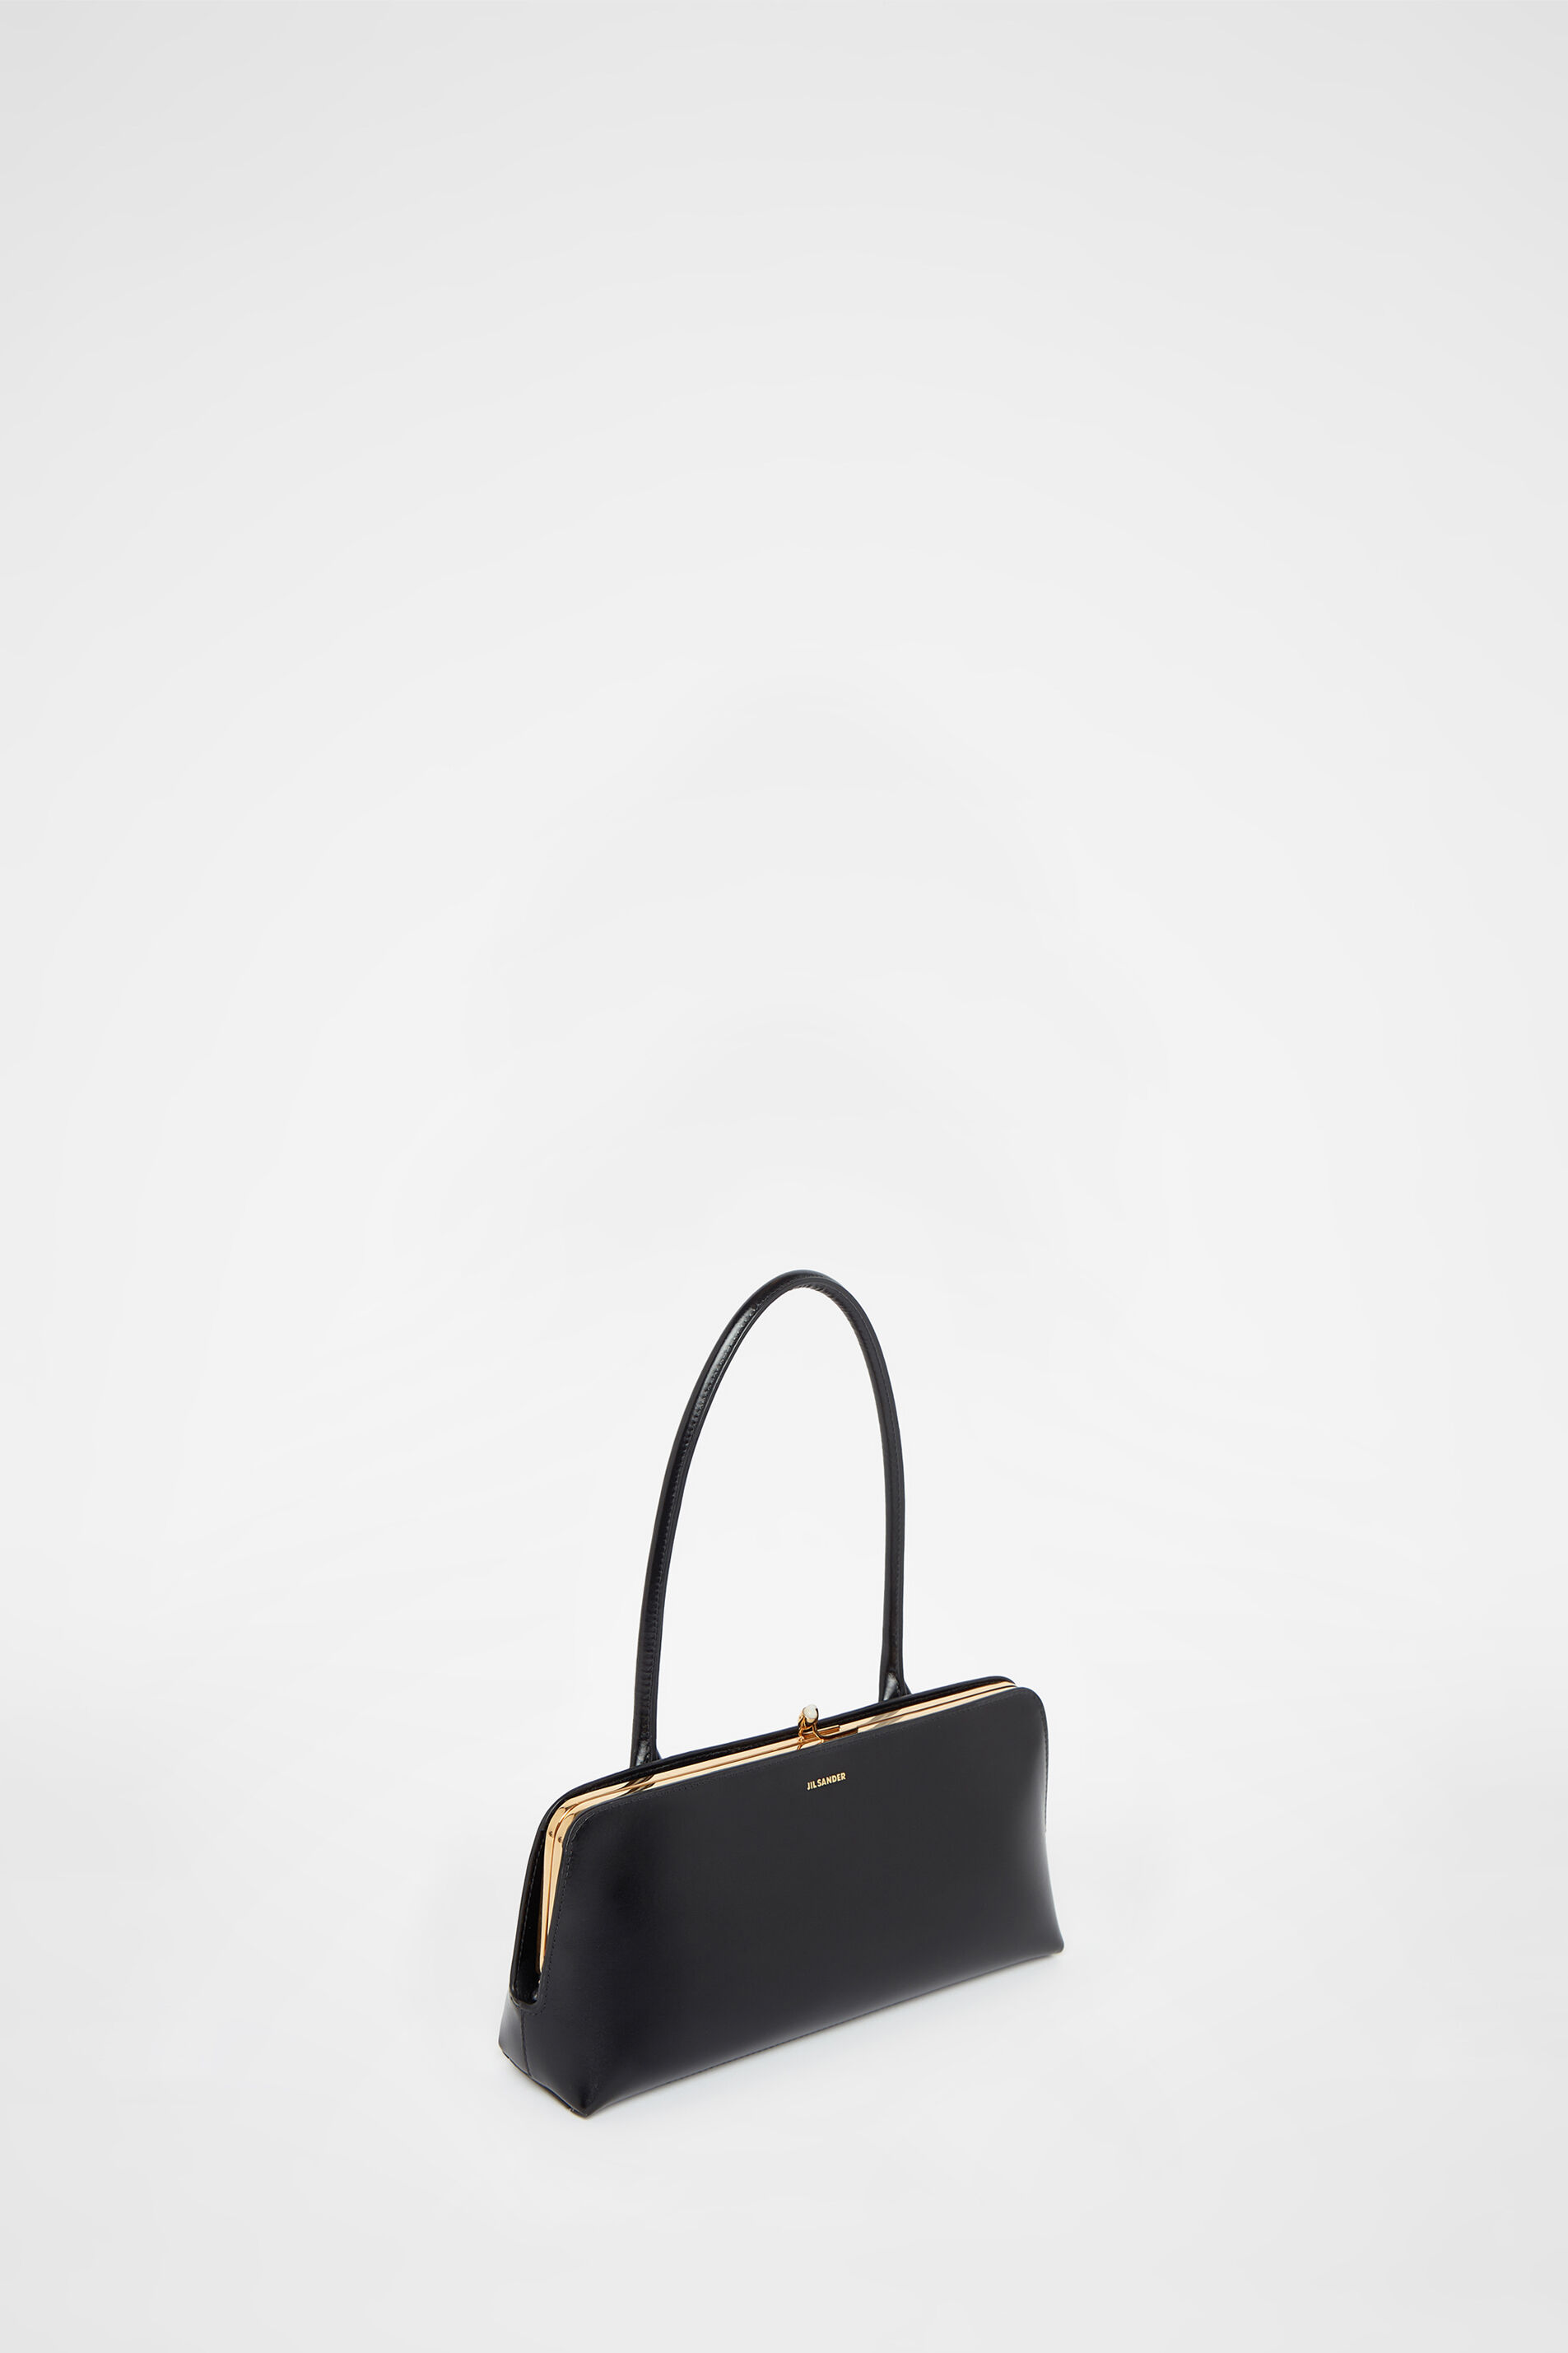 Shoulder Bag Small, black, large